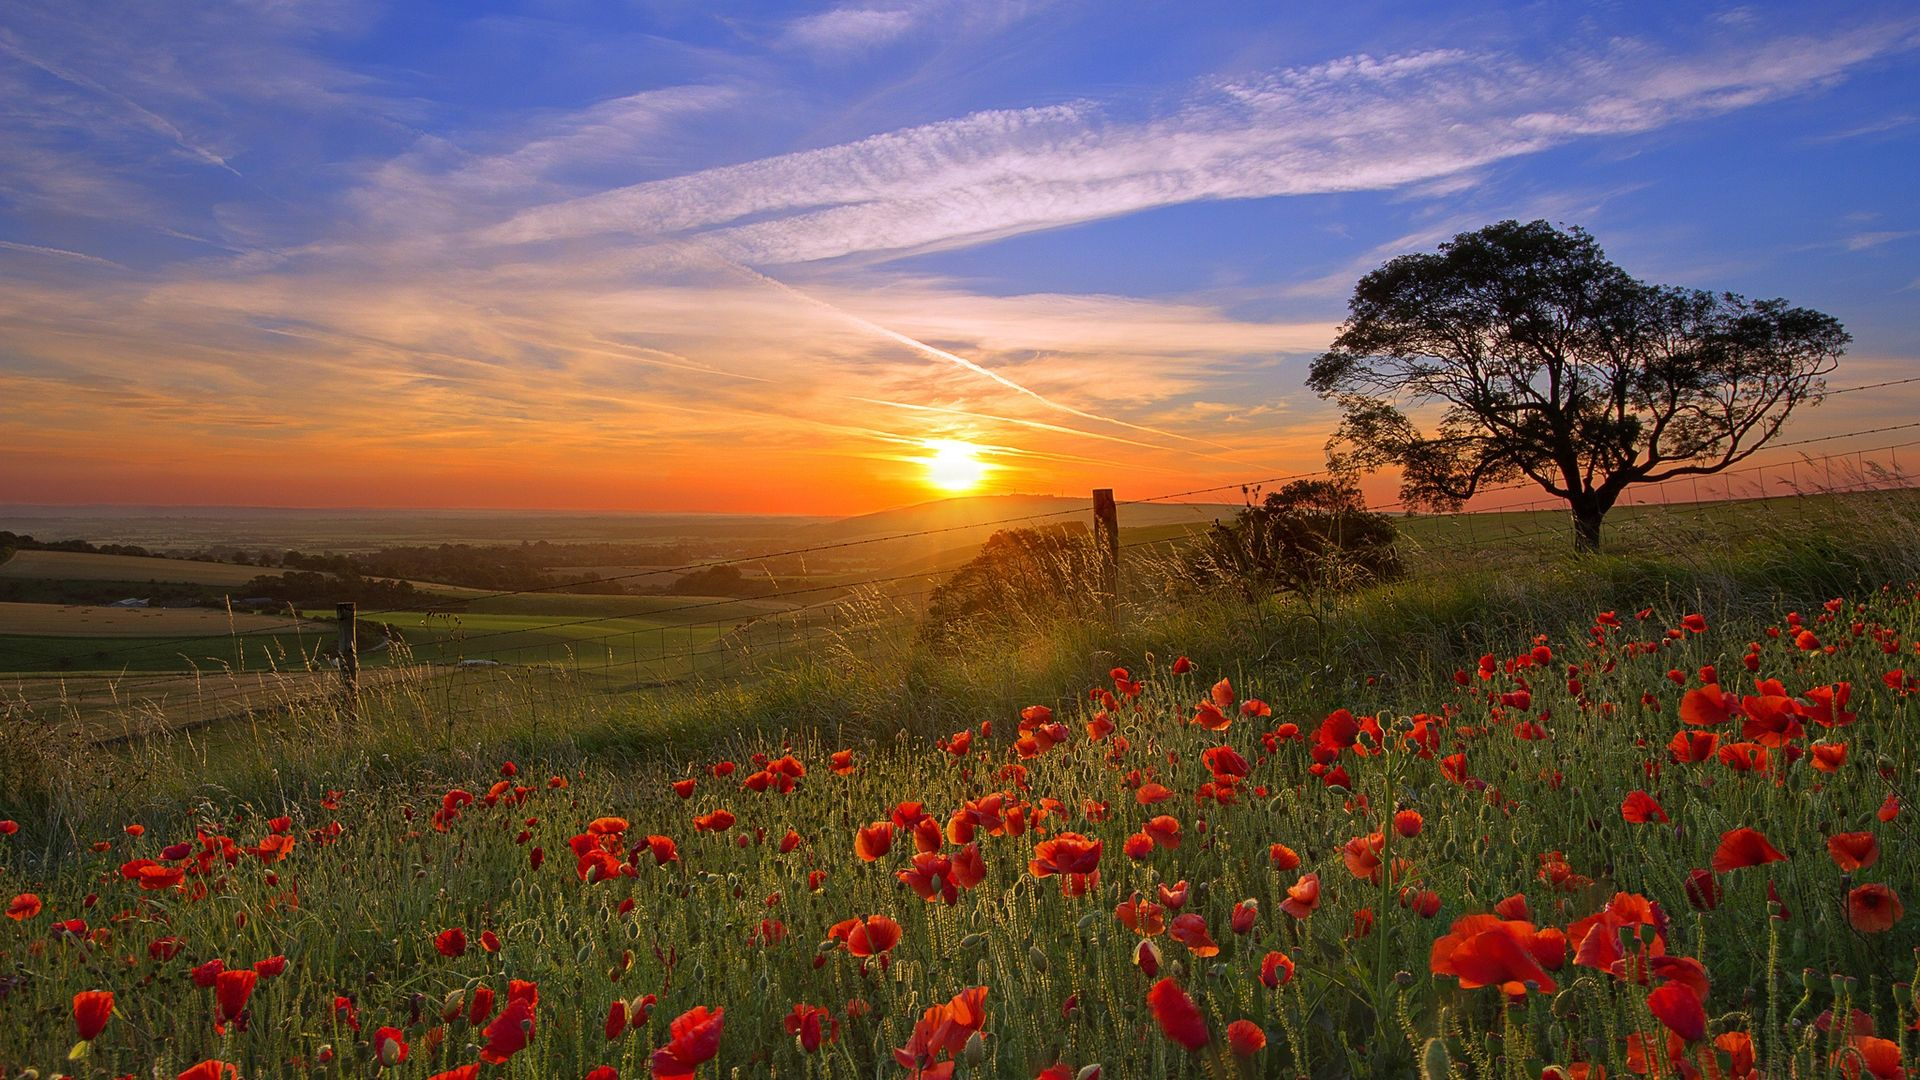 Sunset And Flowers 1920x1080 Paysage Soleil Paysage Nature Paysage